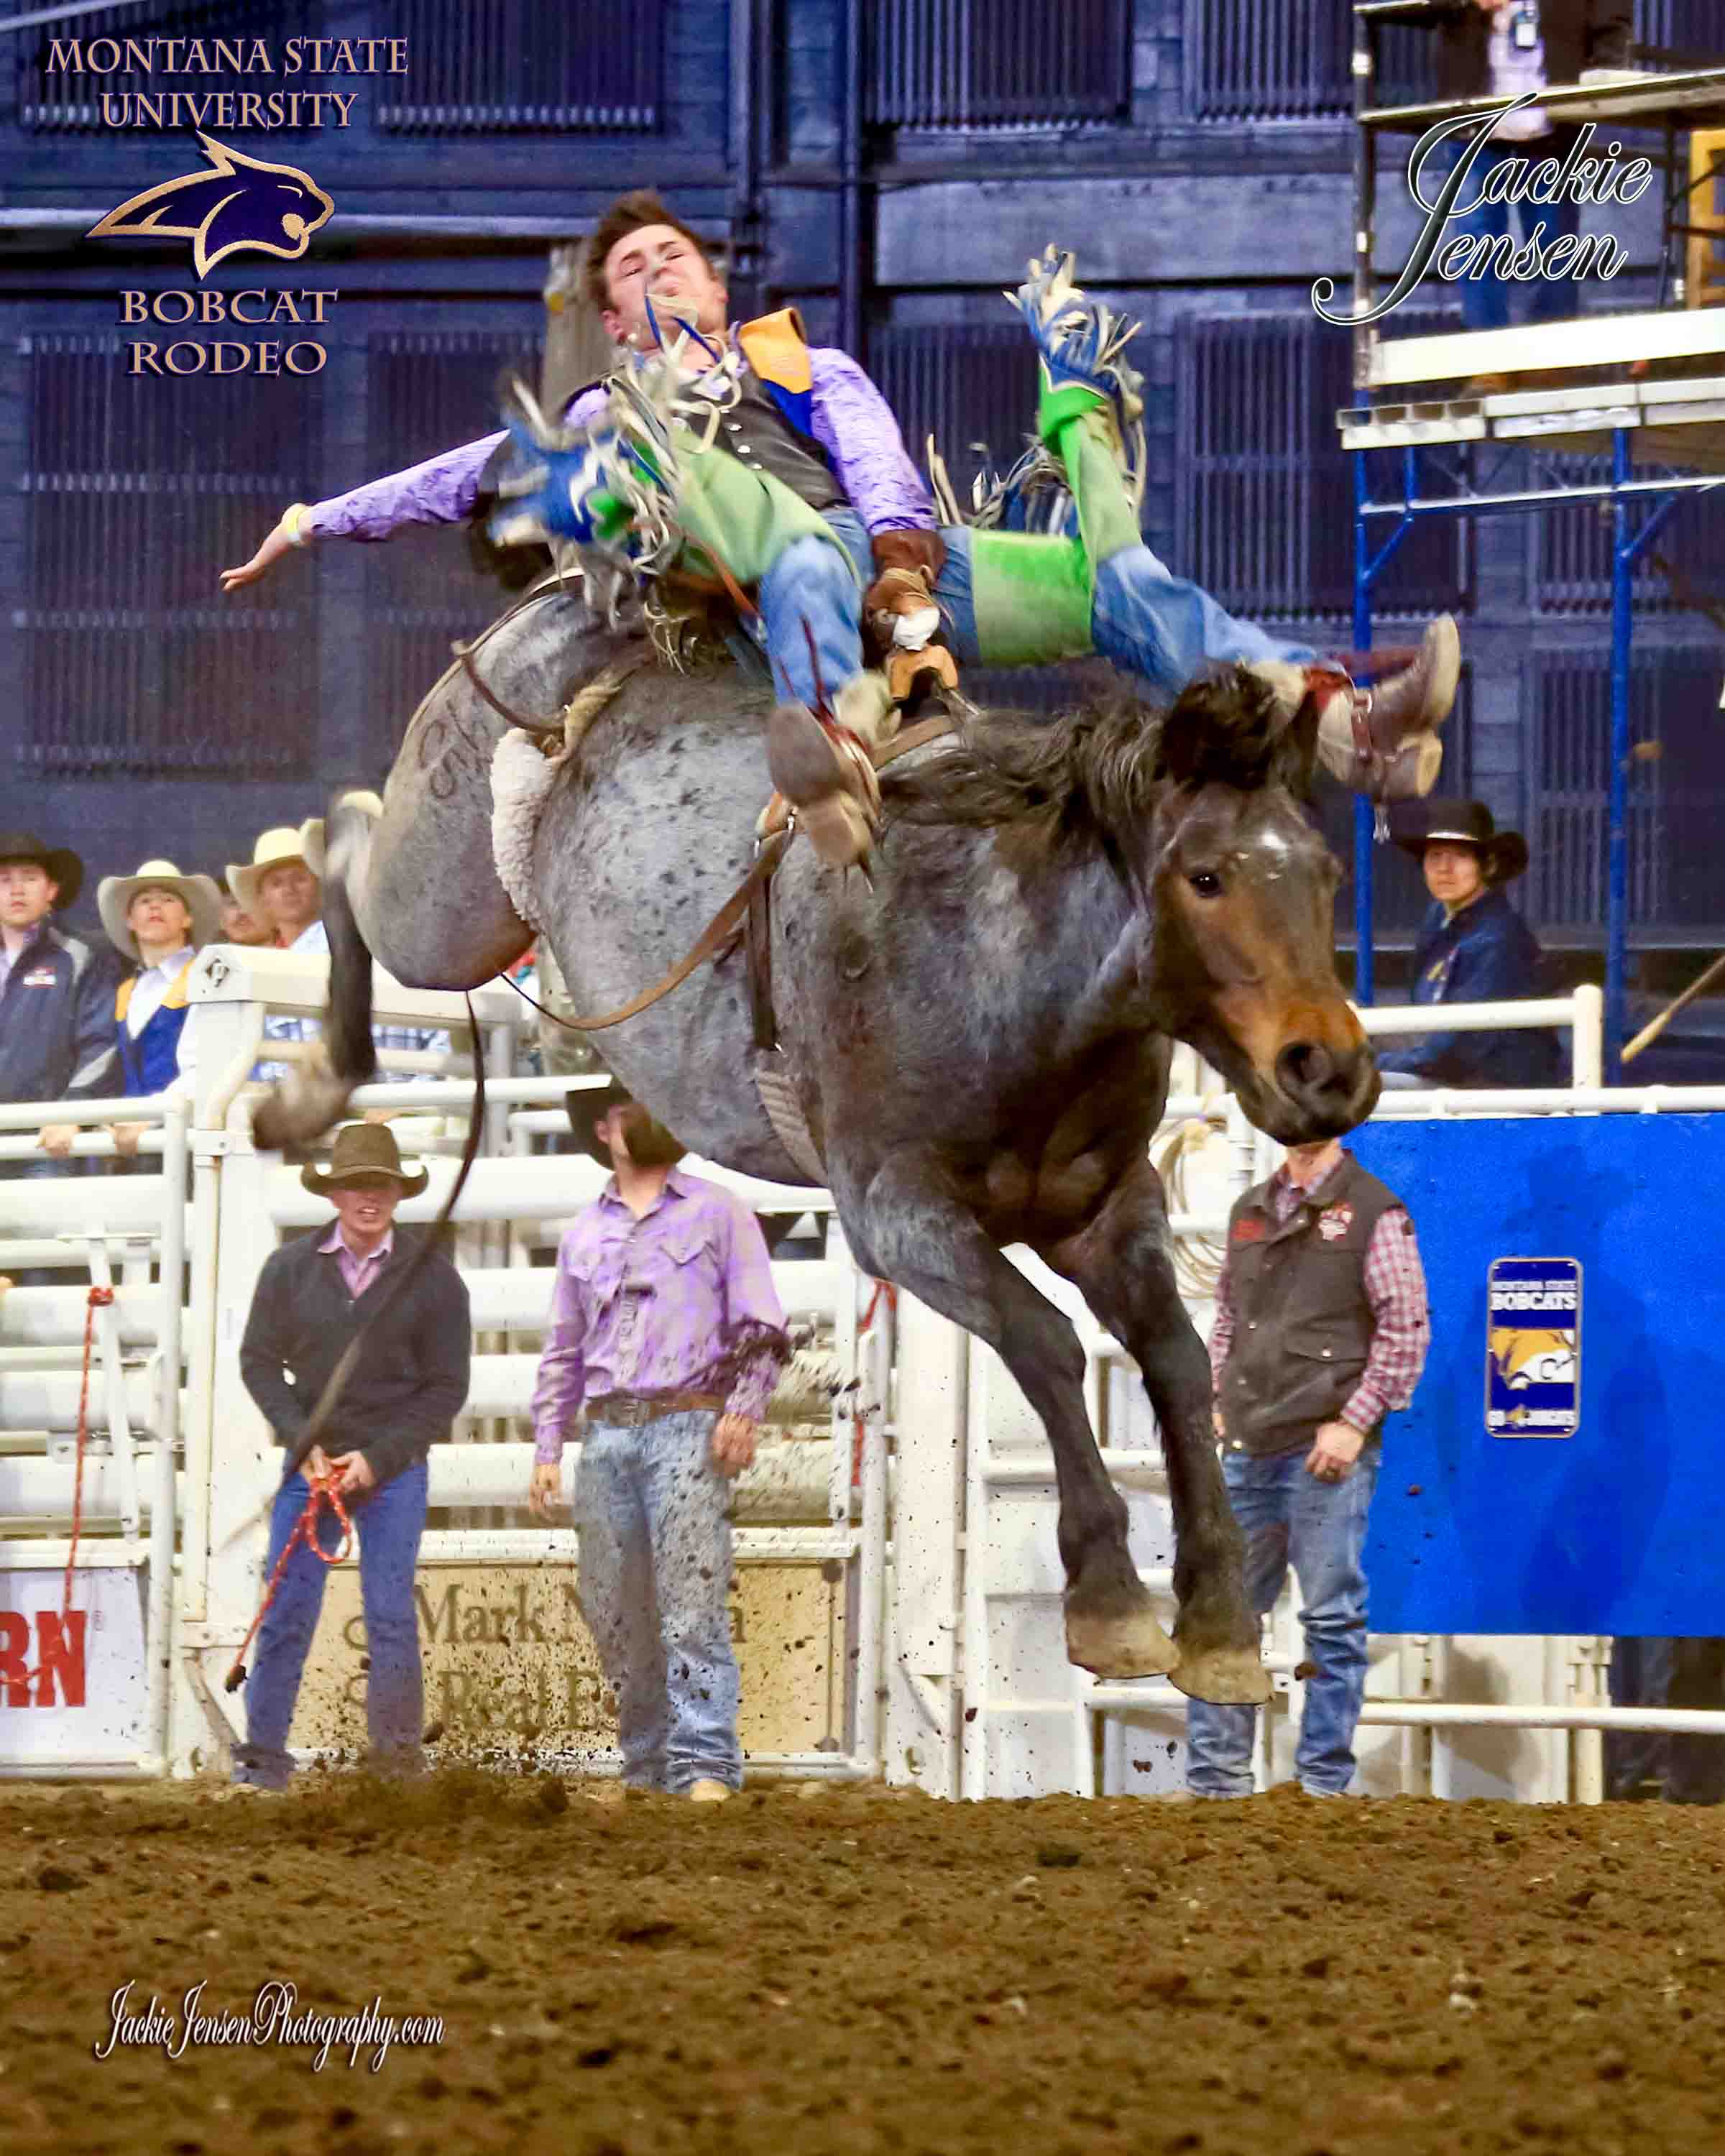 Spring Rodeo Bobcat Rodeo Office Montana State University